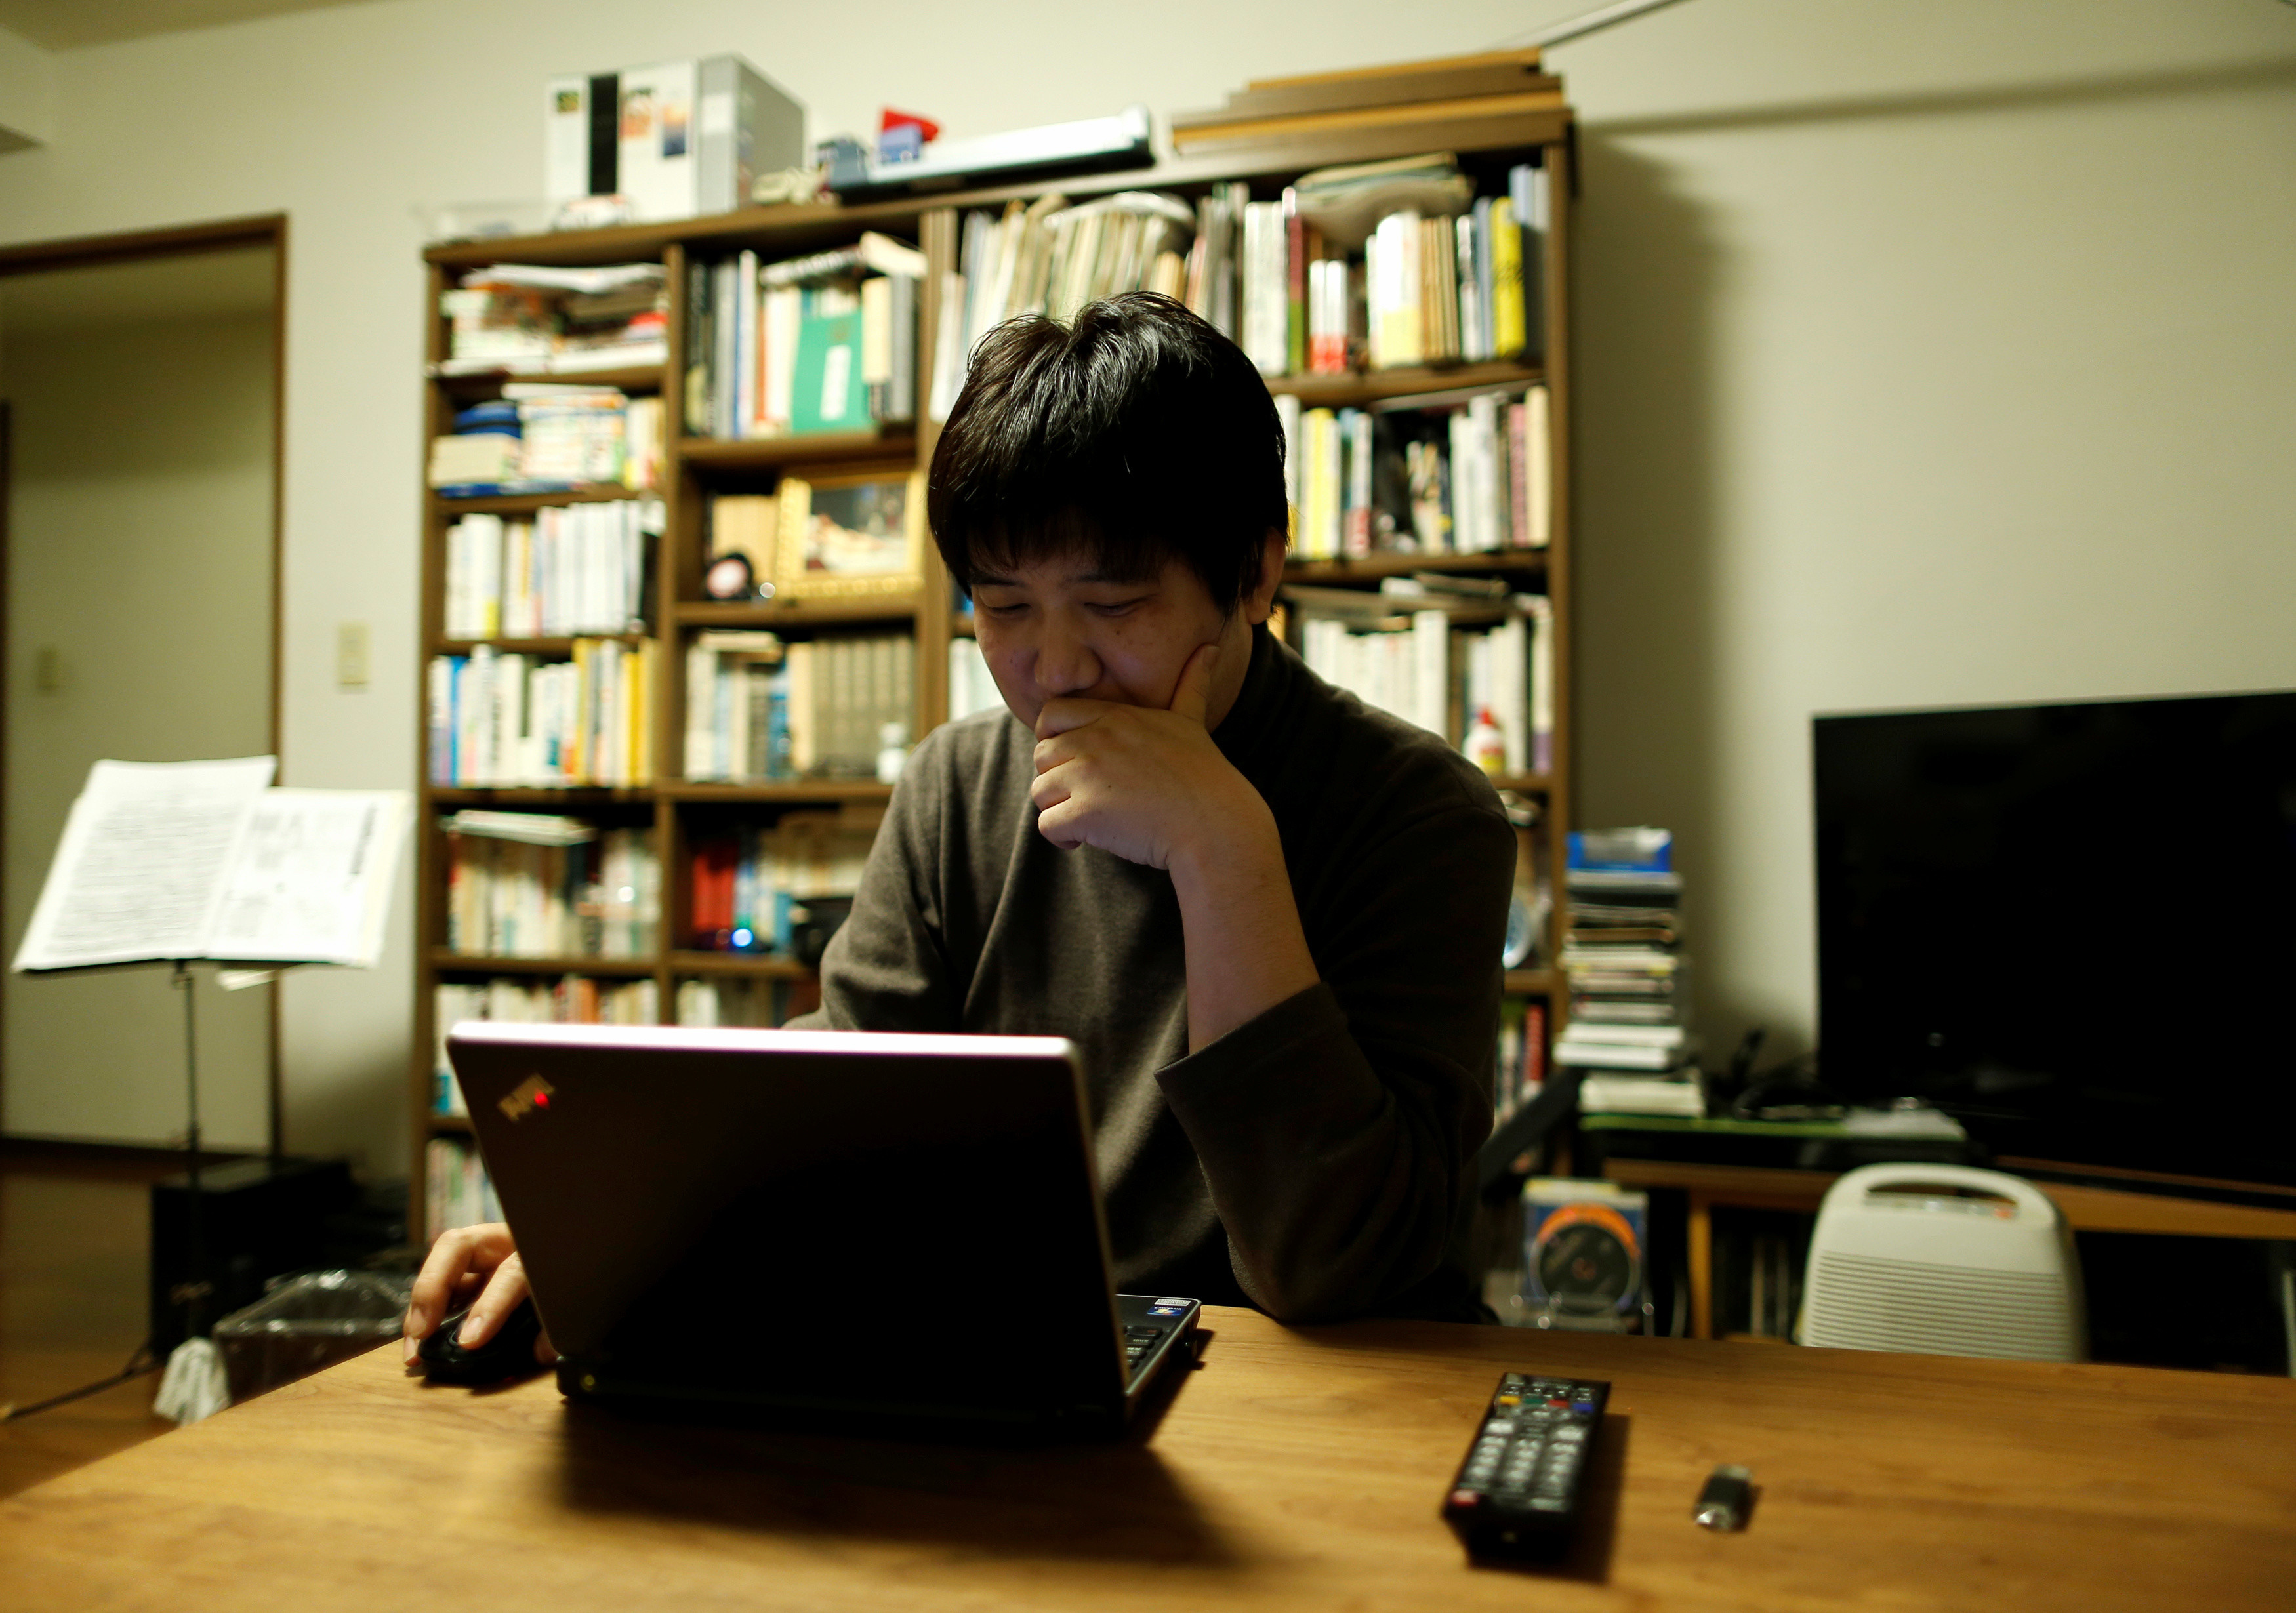 Seijiro Katsura, a 44-year-old office worker, checks market rates for investment opportunities using his laptop computer at his home in Tokyo, Japan December 10, 2016. Picture taken December 10, 2016.  REUTERS/Issei Kato - RC129D1D24F0